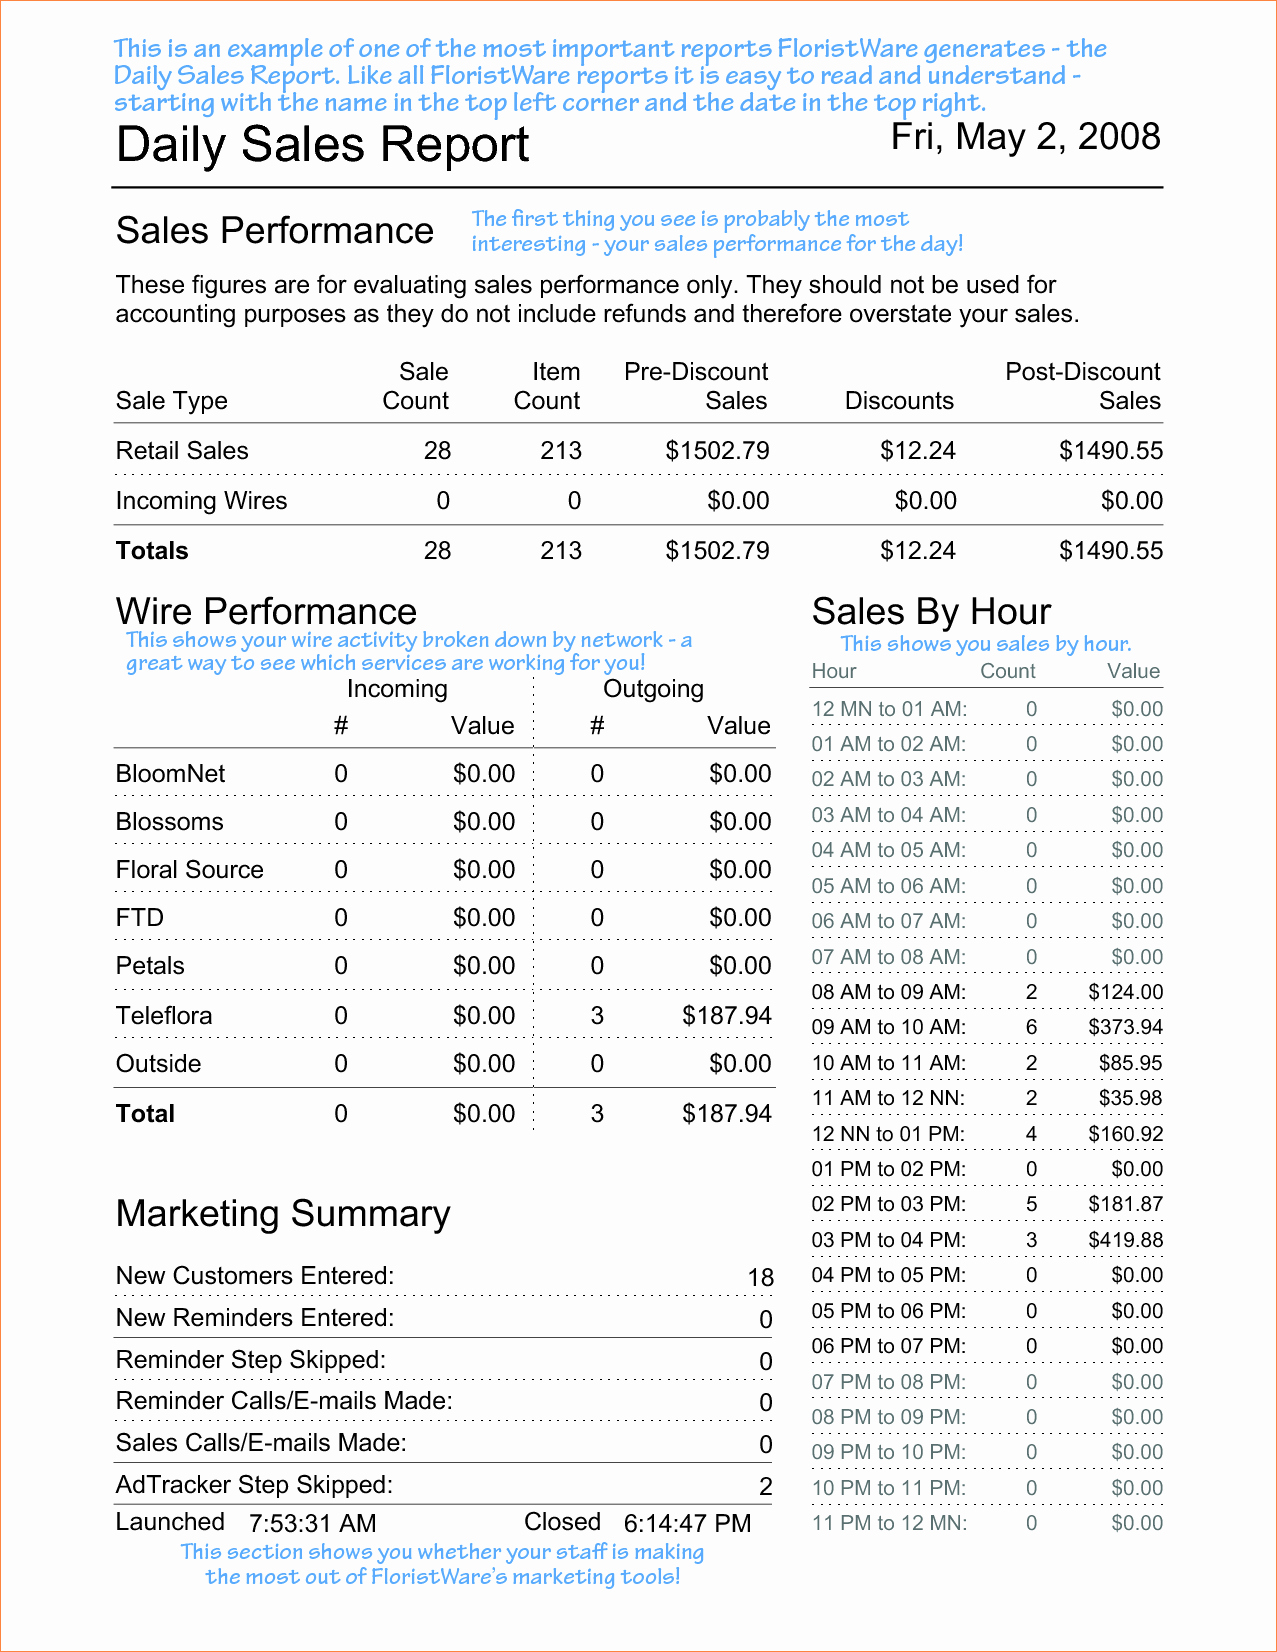 Daily Sales Report Template Awesome 8 Daily Sales Report Templatereport Template Document